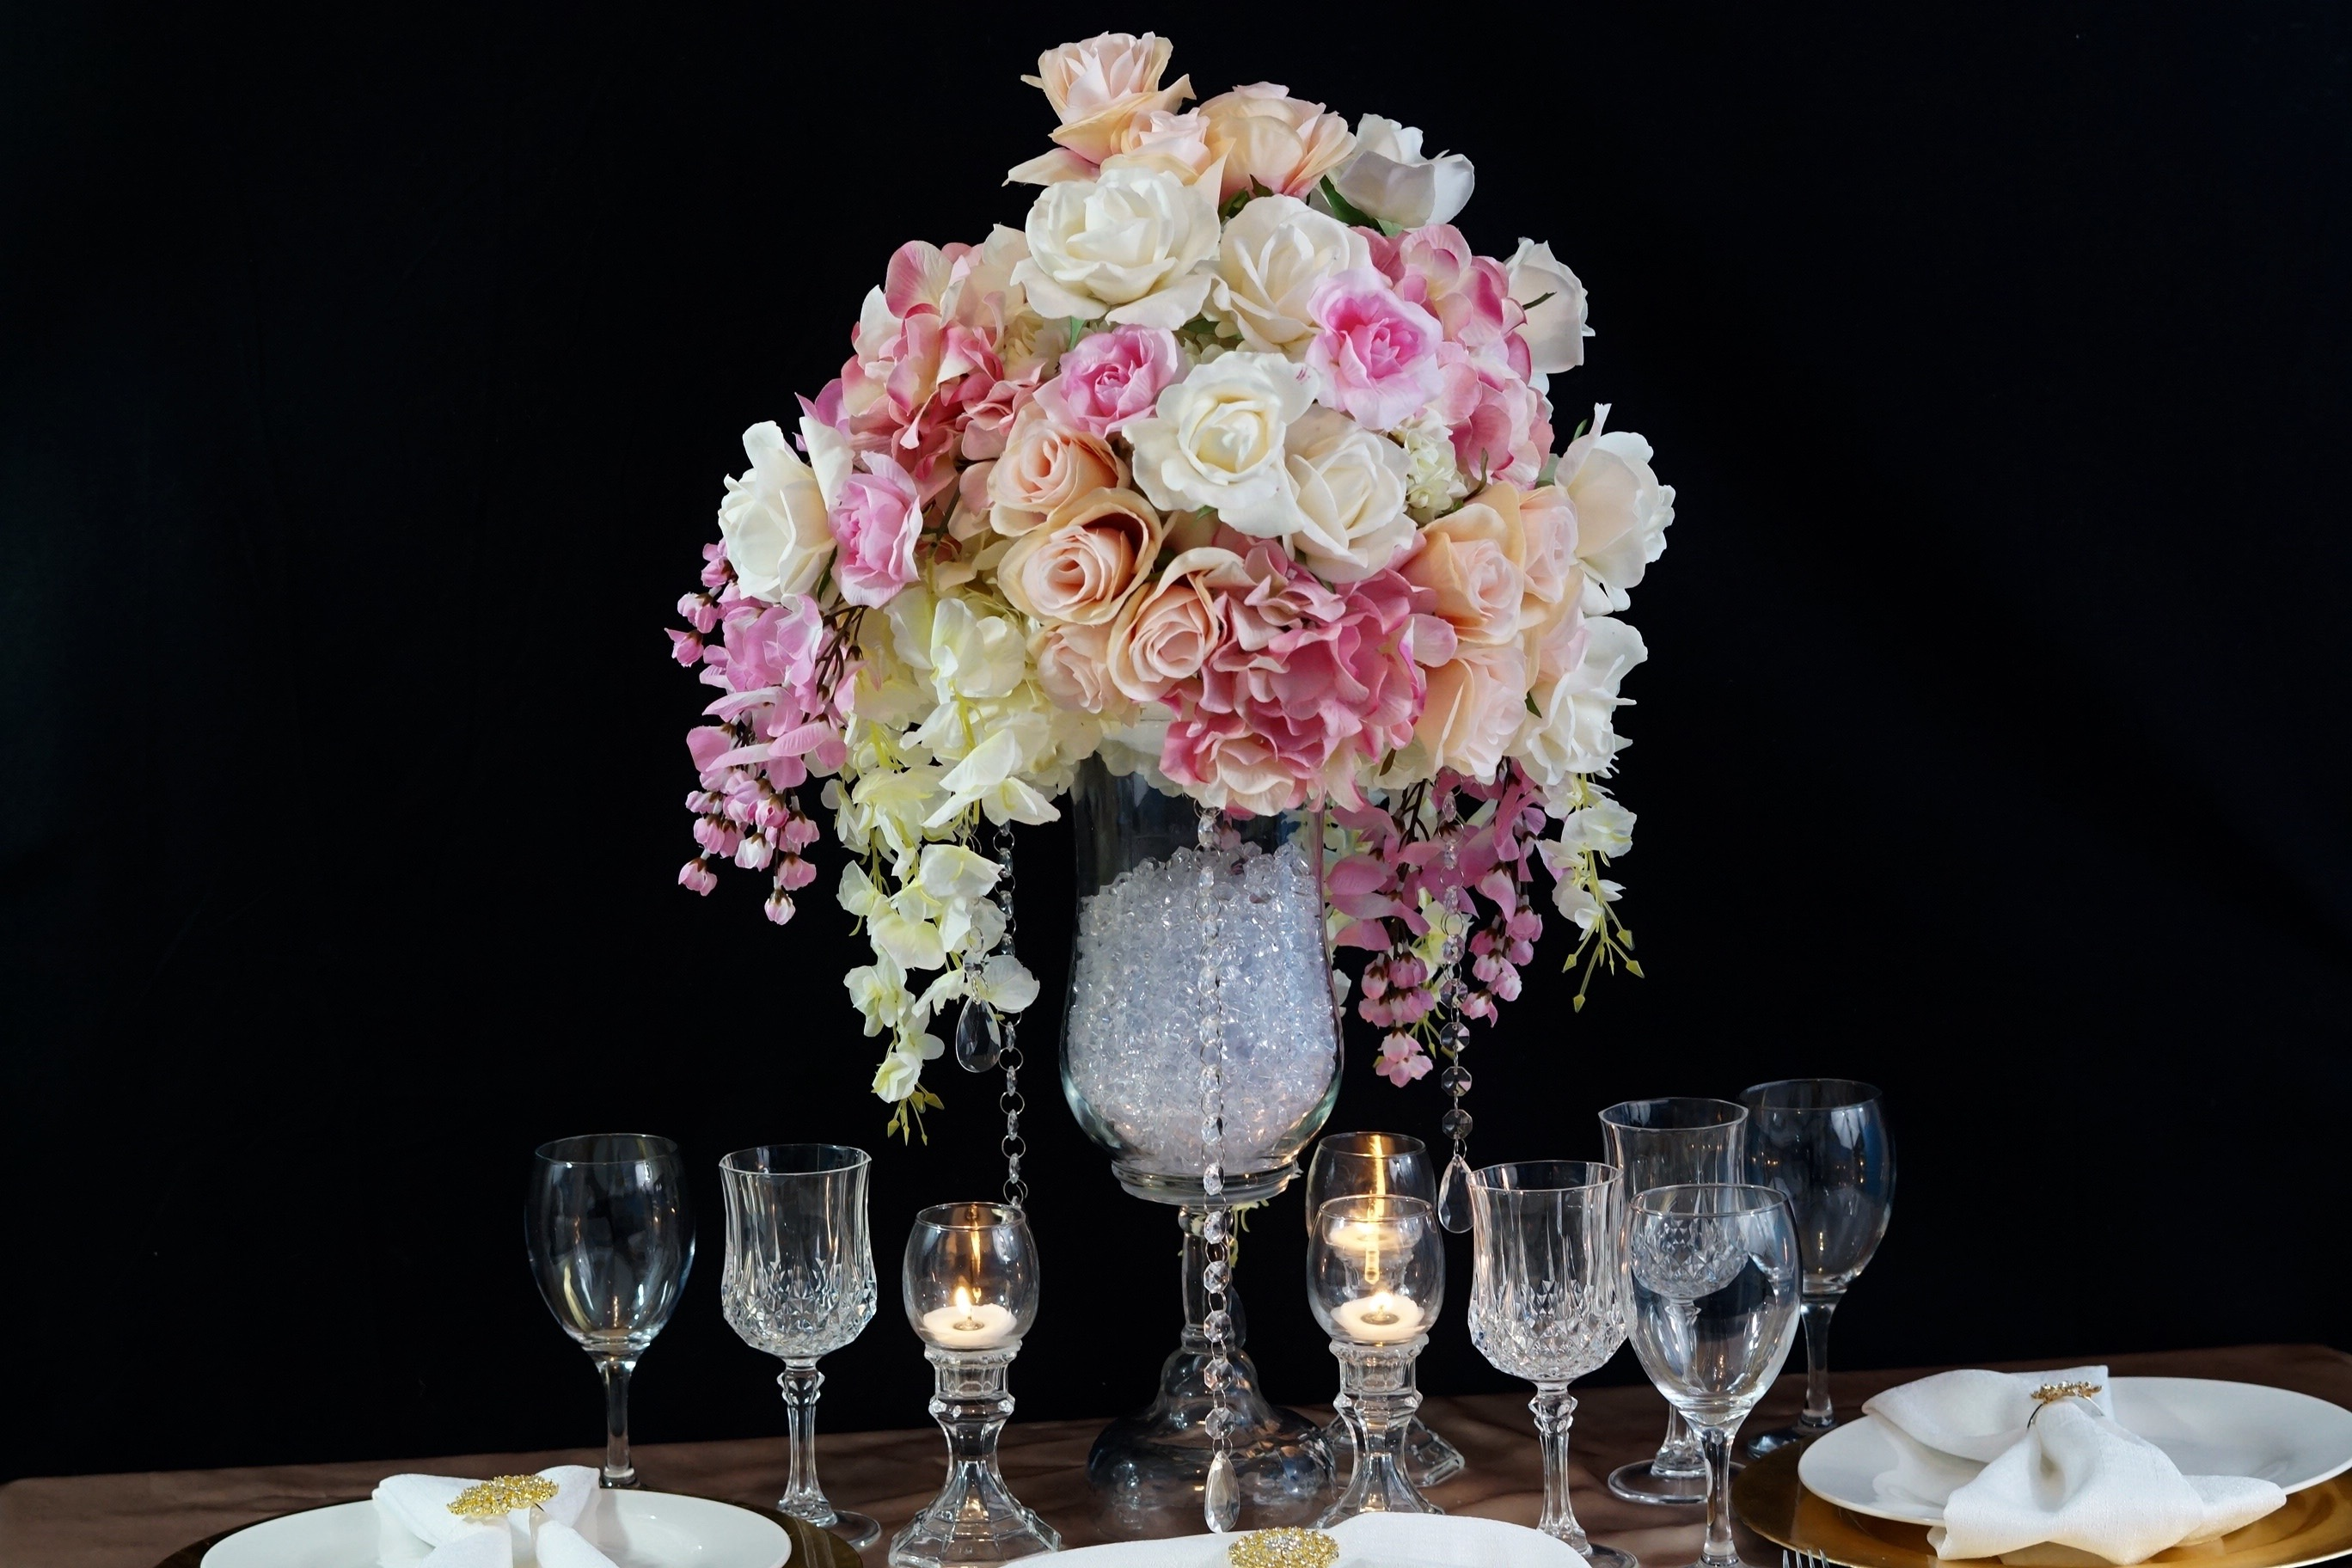 Ultimate wow factor diy glam wedding centerpiece this is the typical thing you will hear those who are from texas say myself included well although you may not be from texas solutioingenieria Gallery